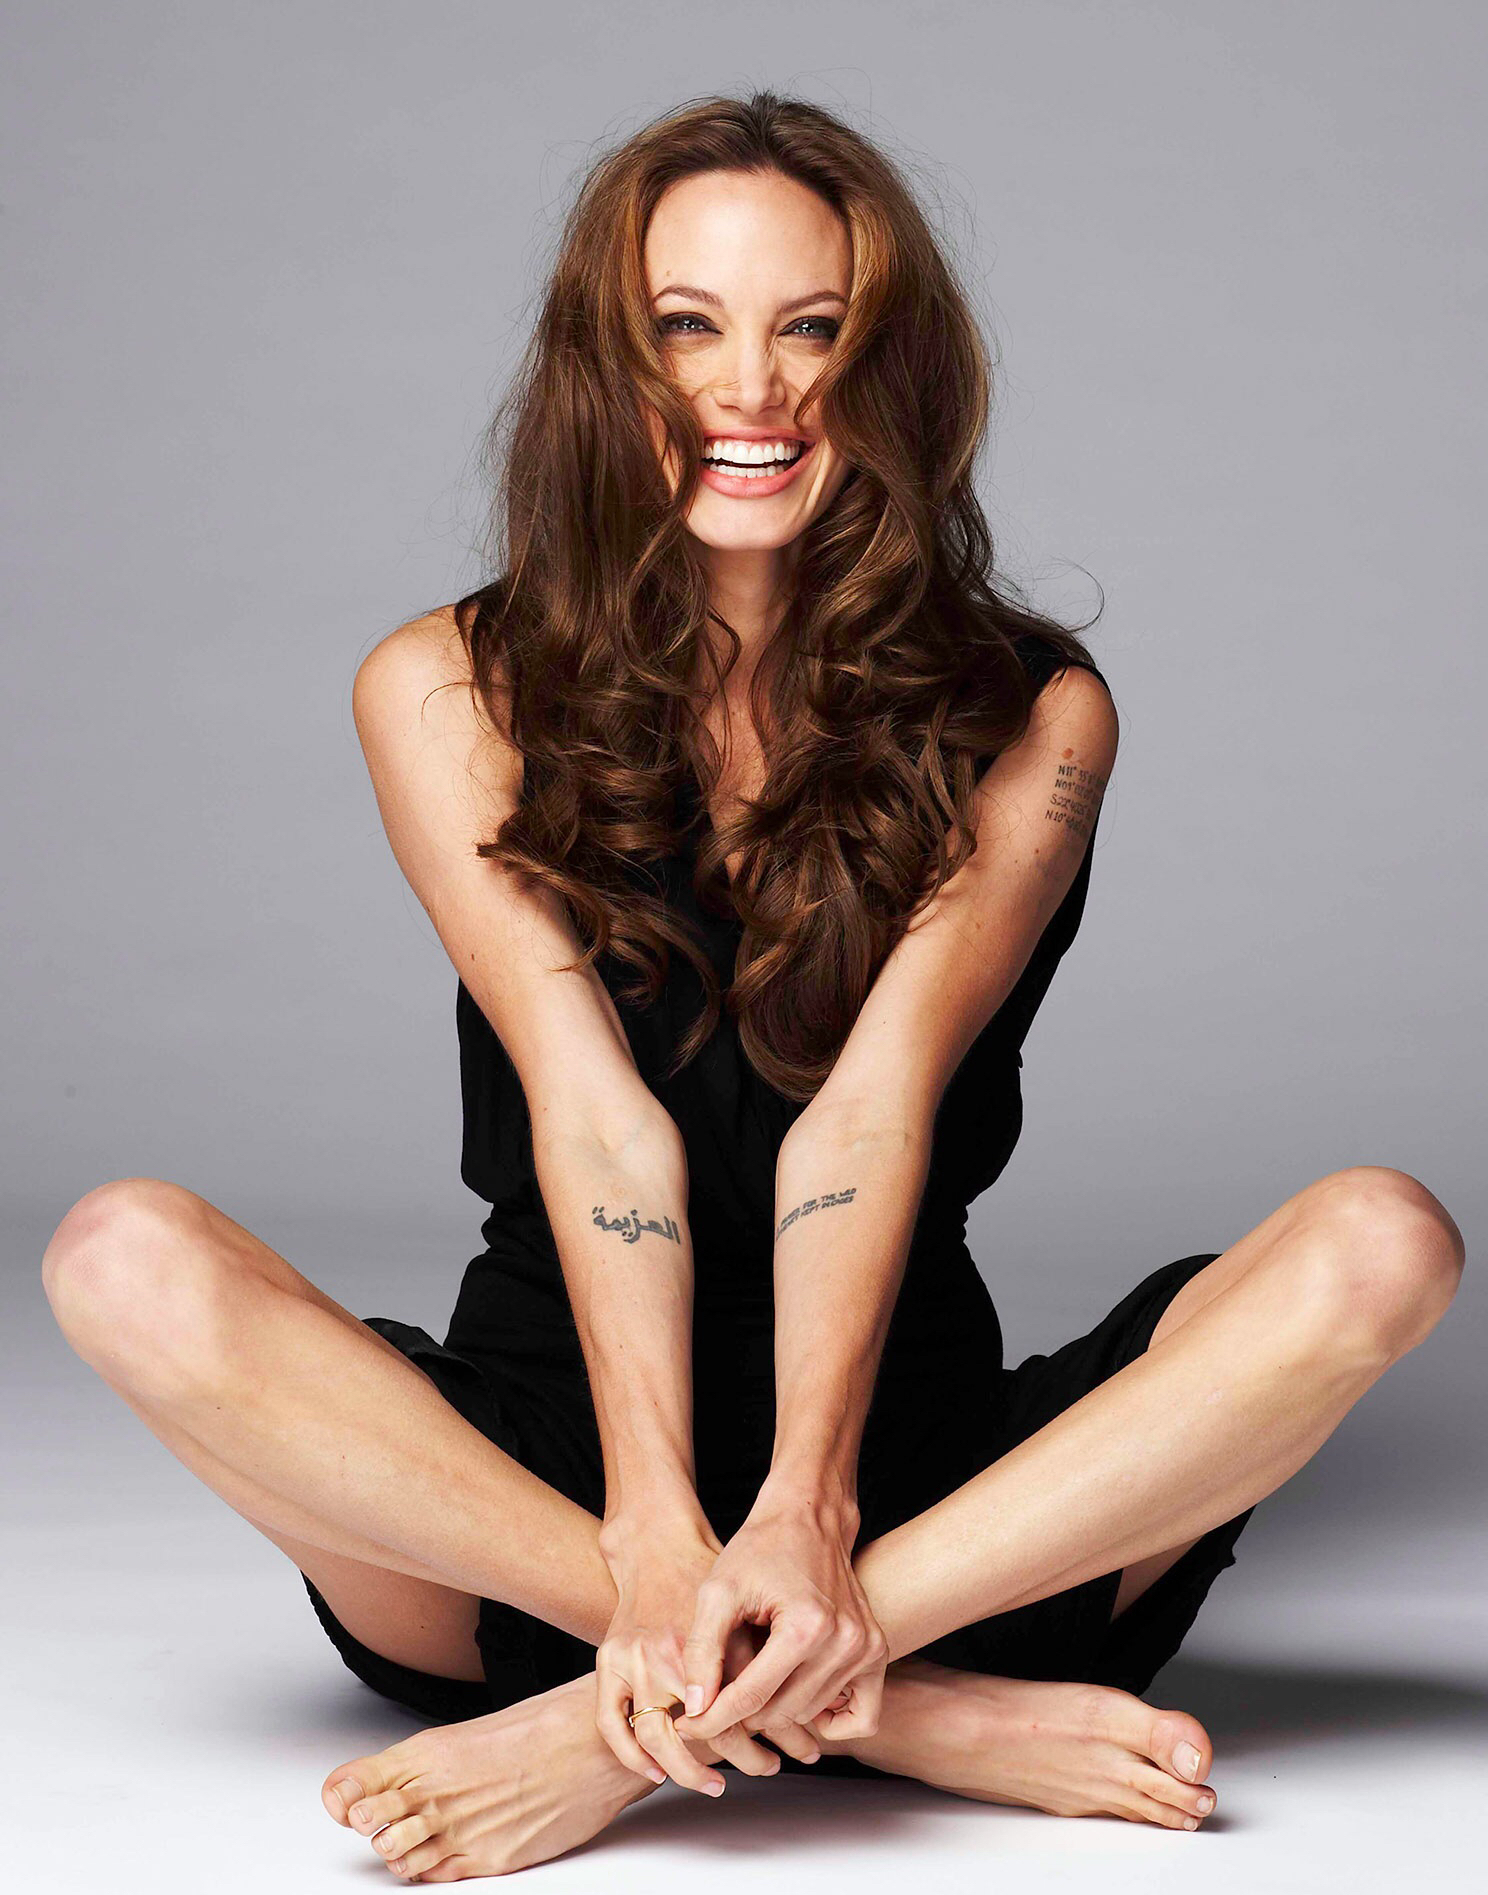 Angelina Jolie nude - Pictures of every celebrity